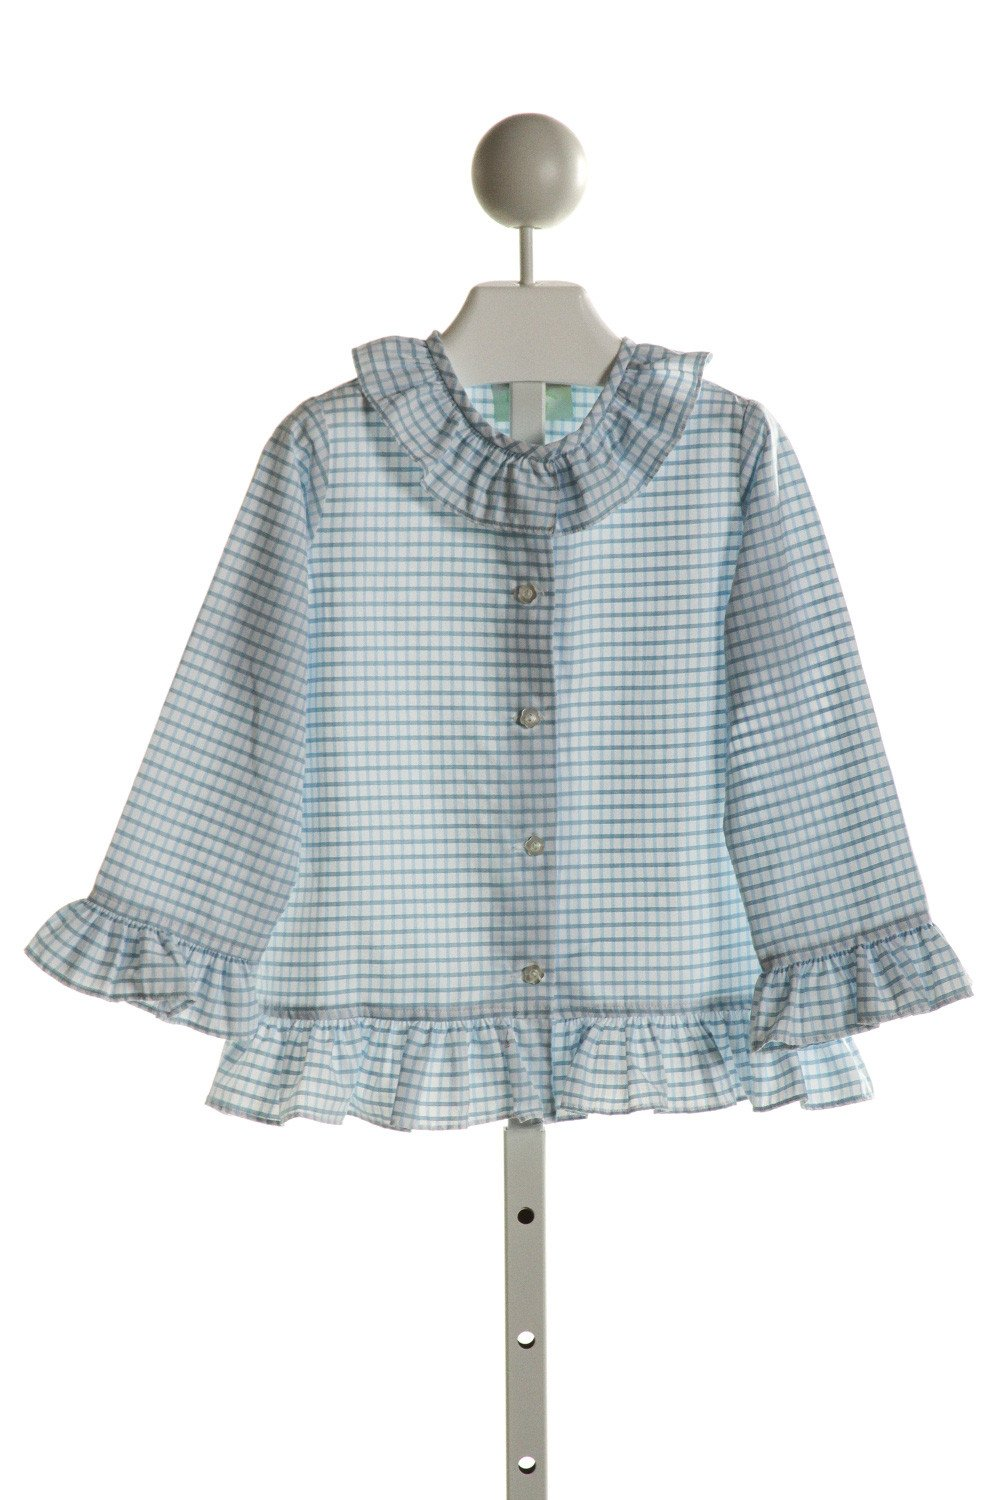 ALICE KATHLEEN  LT BLUE  GINGHAM  CLOTH LS SHIRT WITH RUFFLE